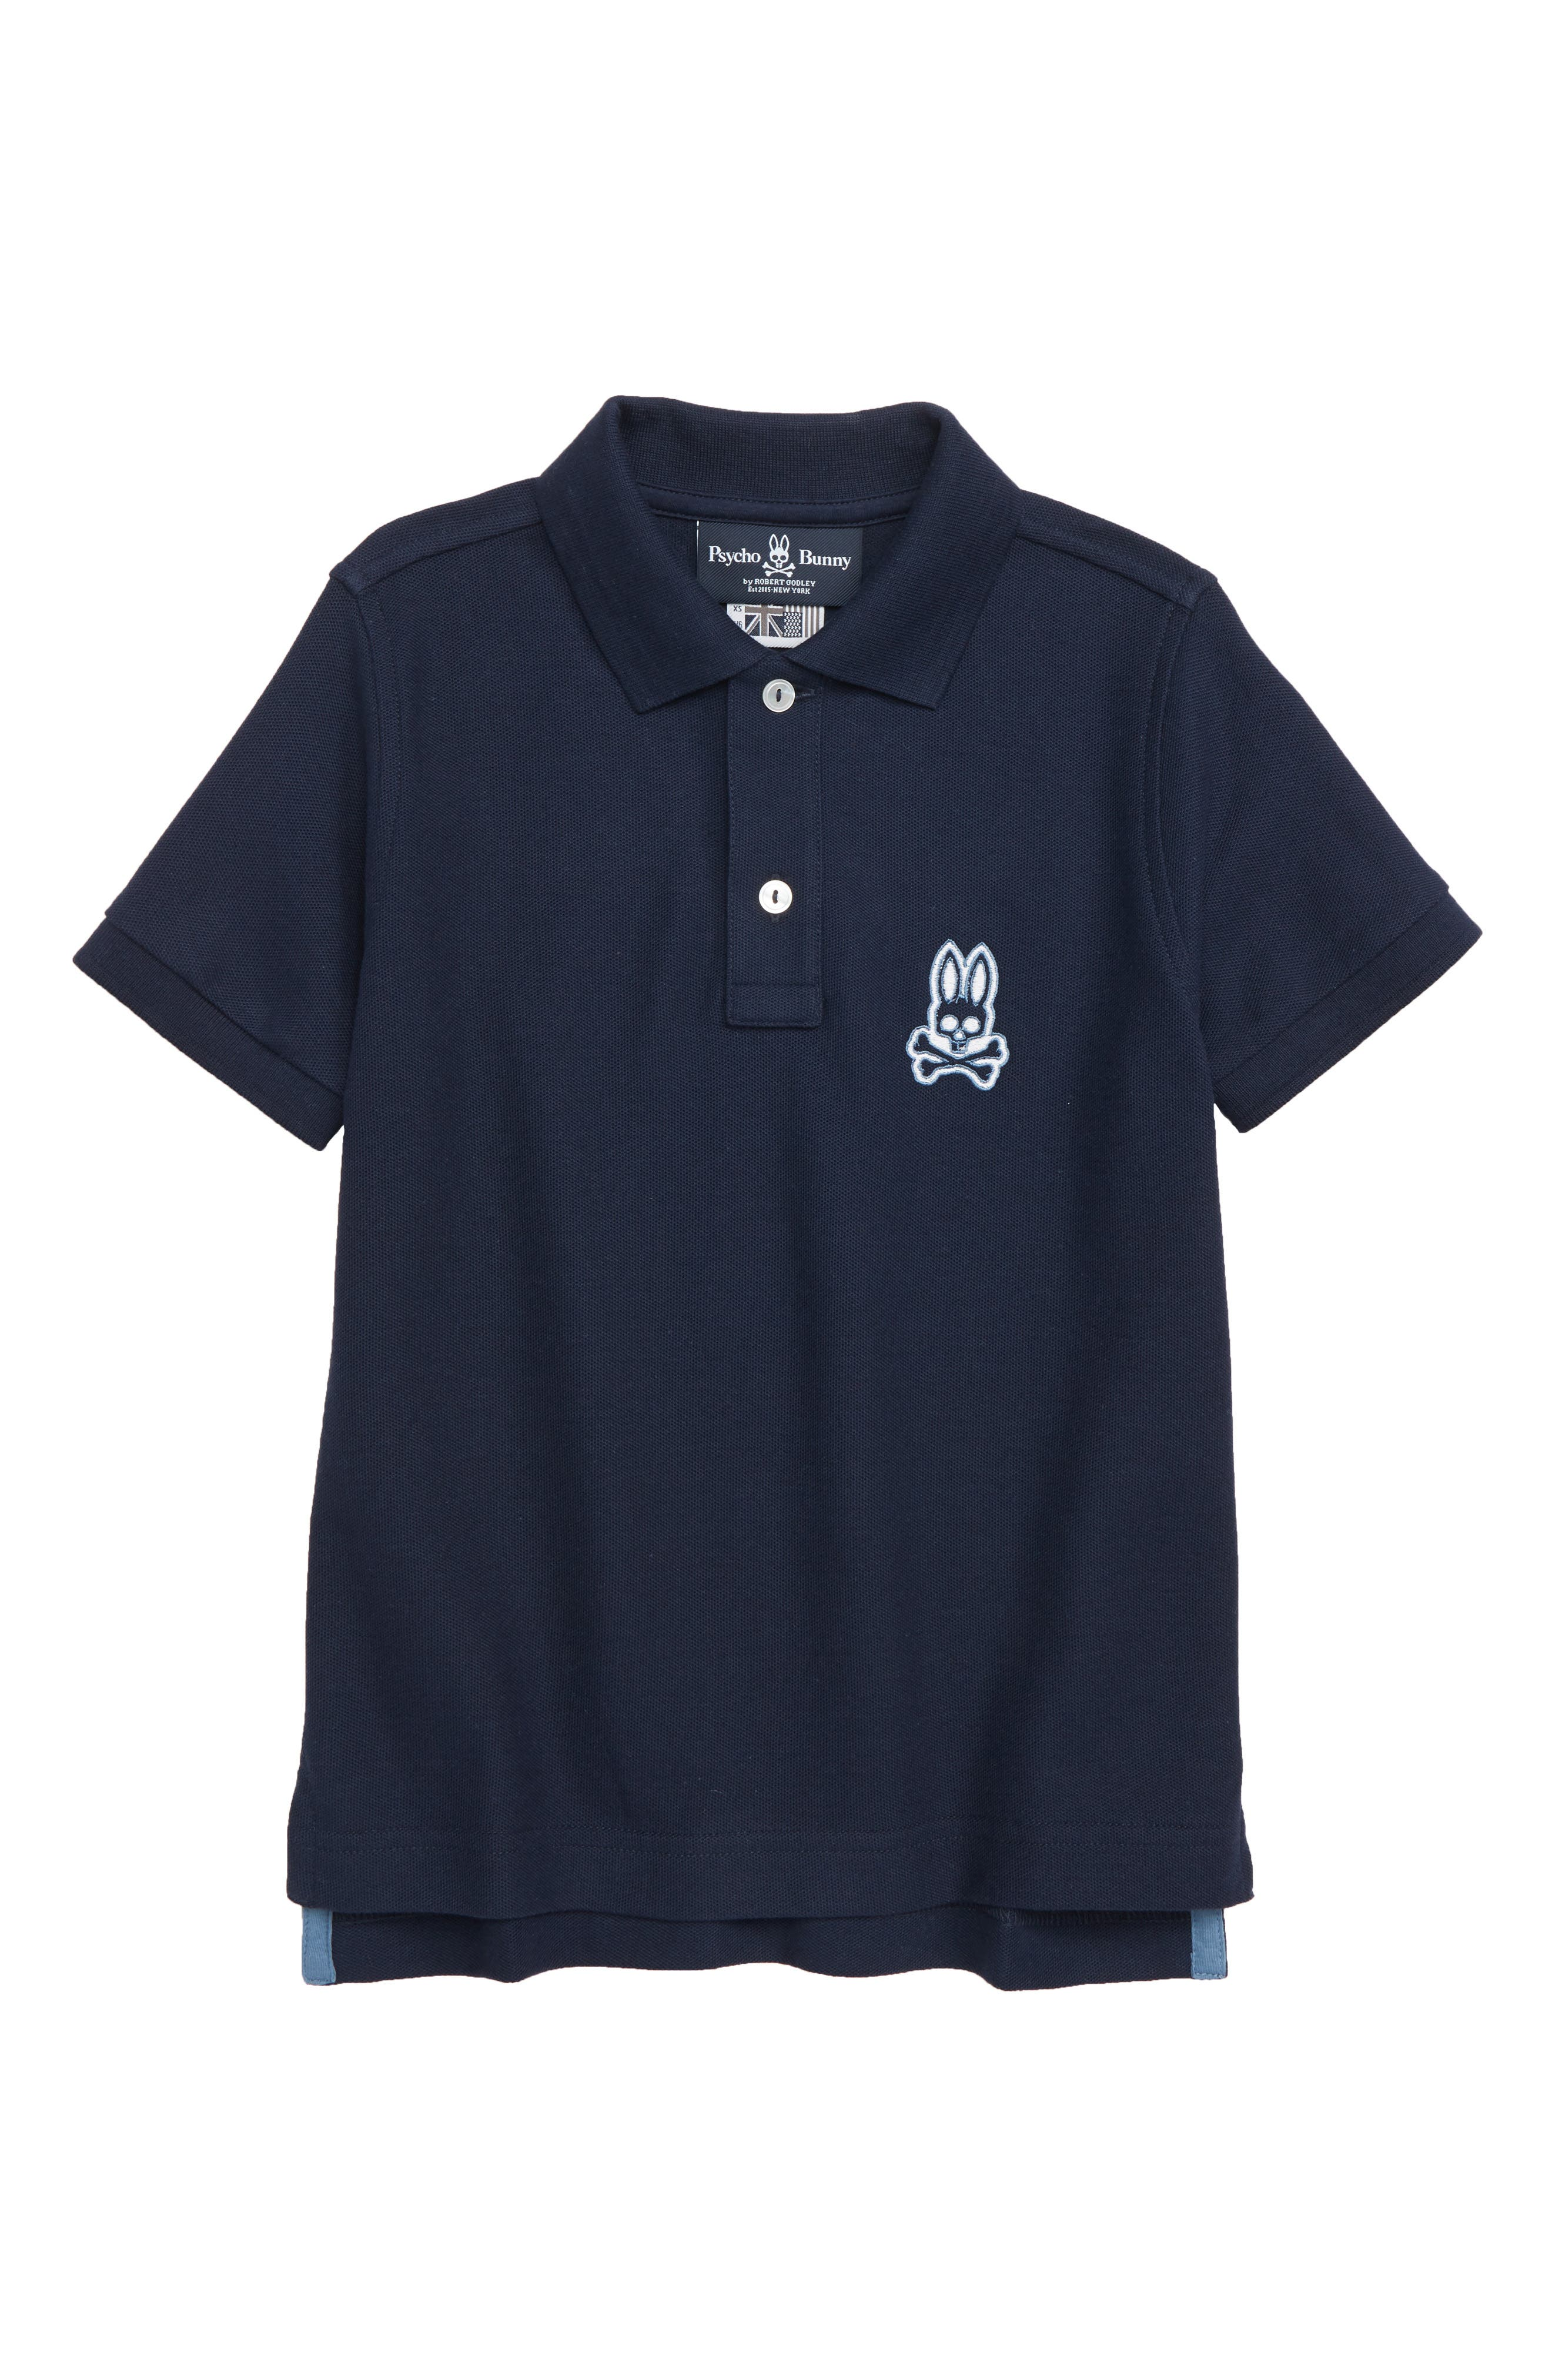 Alto Bunny Polo,                             Main thumbnail 1, color,                             NAVY